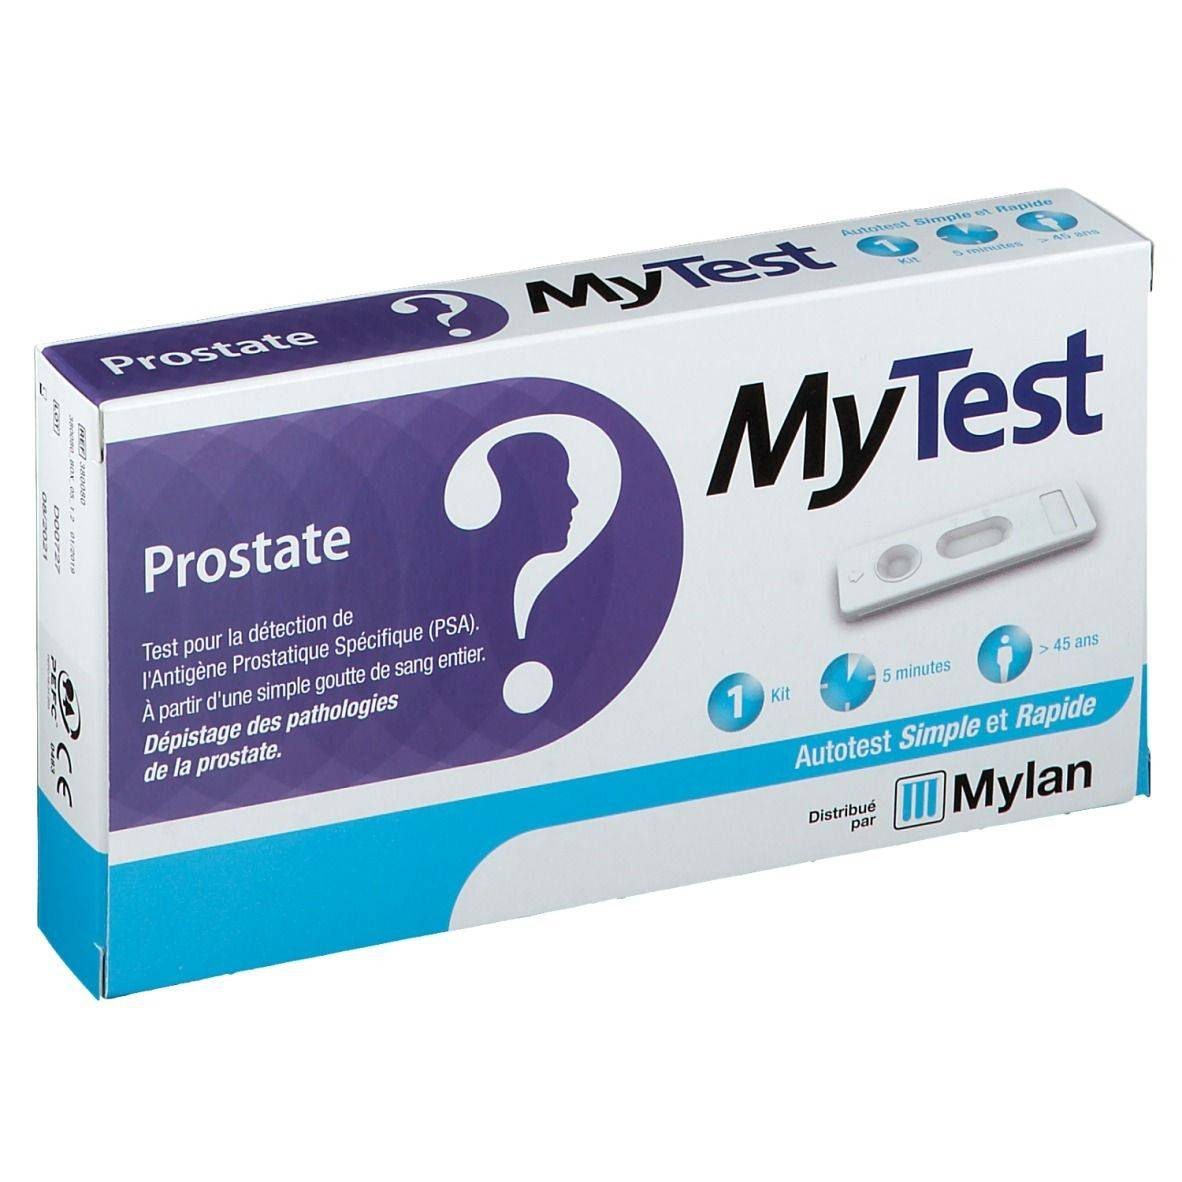 MyTest Prostate Test pc(s) test(s)